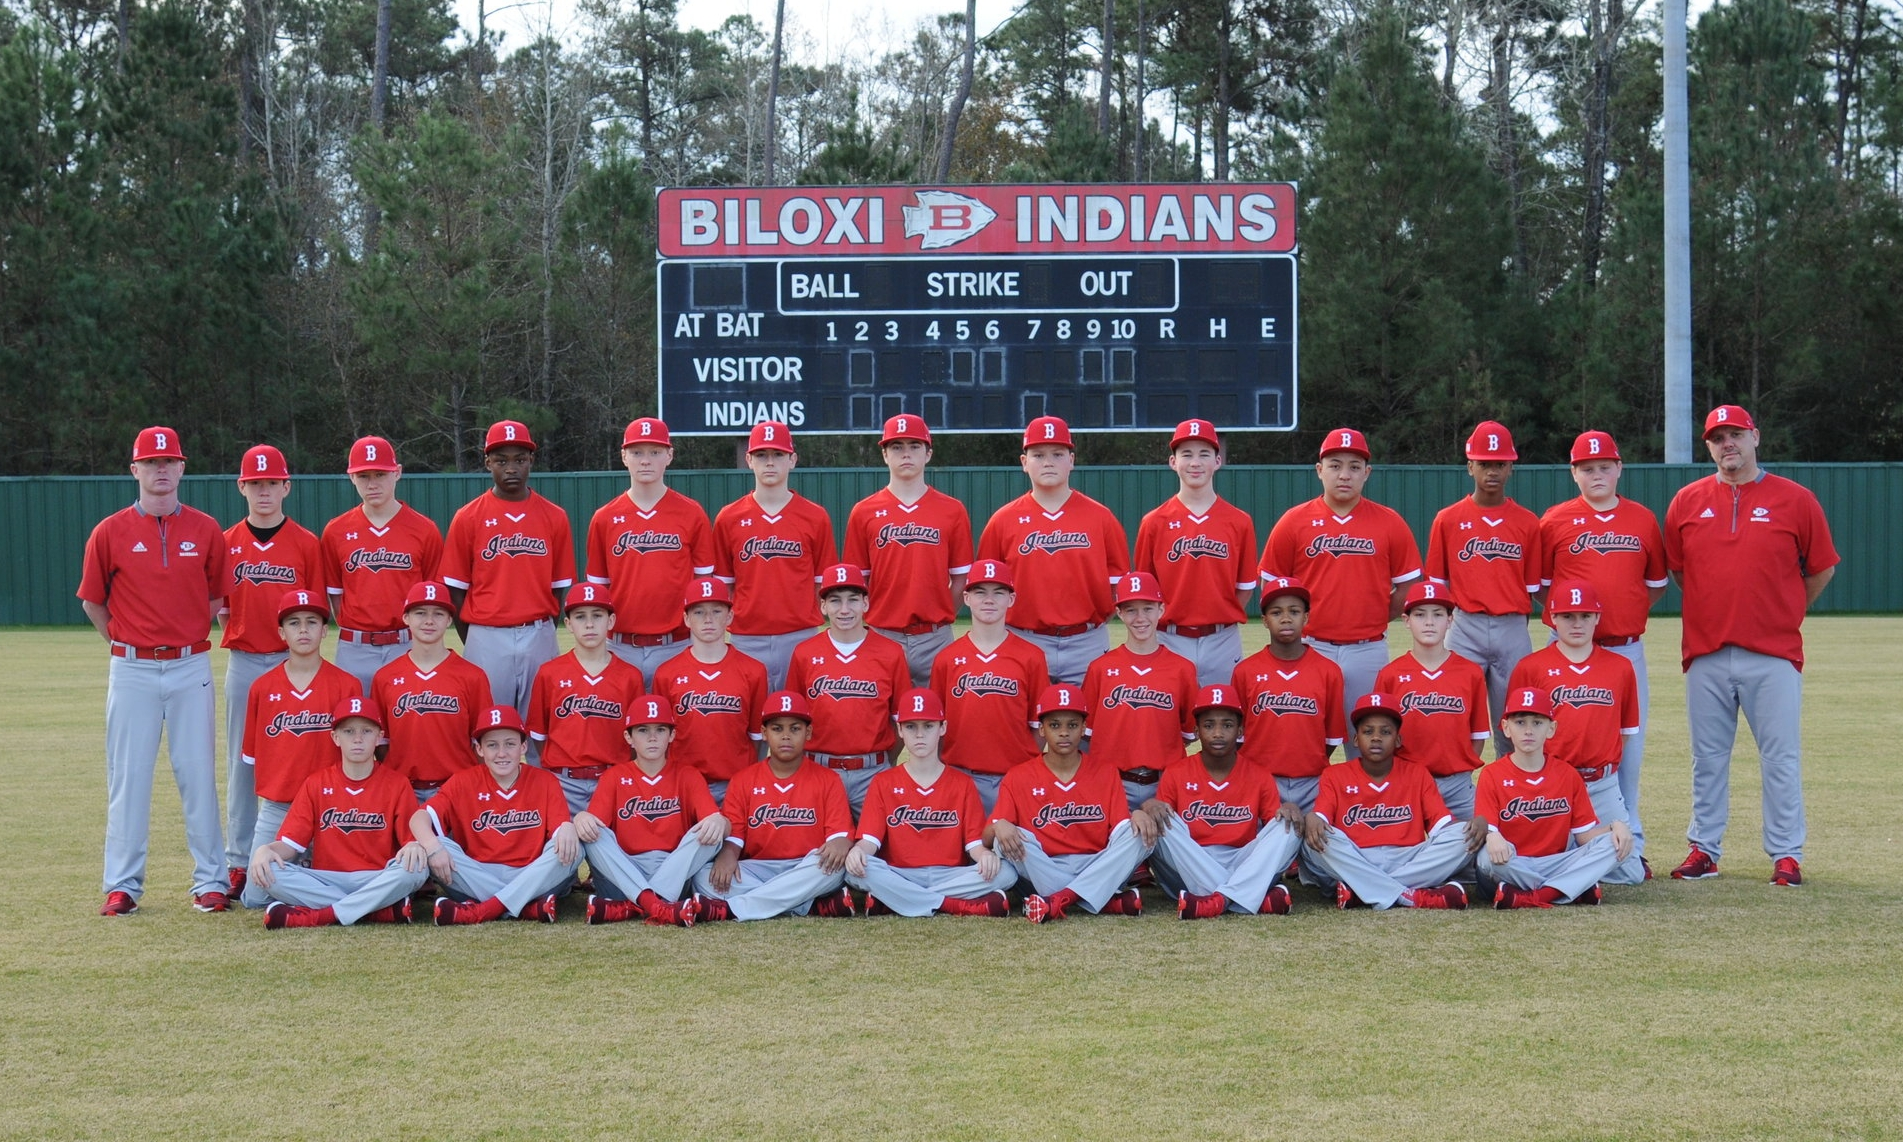 Jr High Team Biloxi Indians Baseball